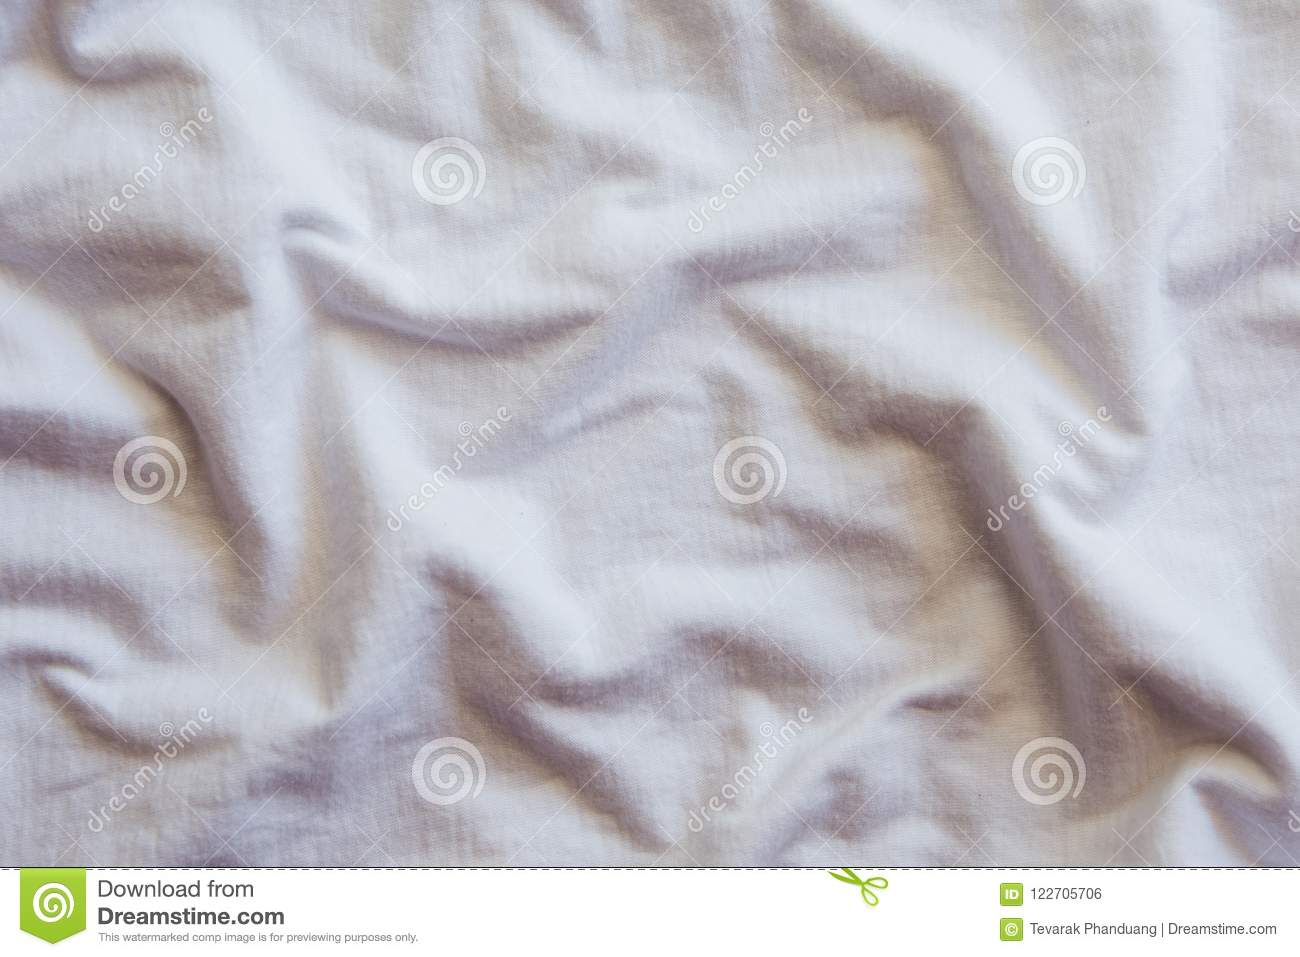 Crumpled white Cotton Fabric Texture.